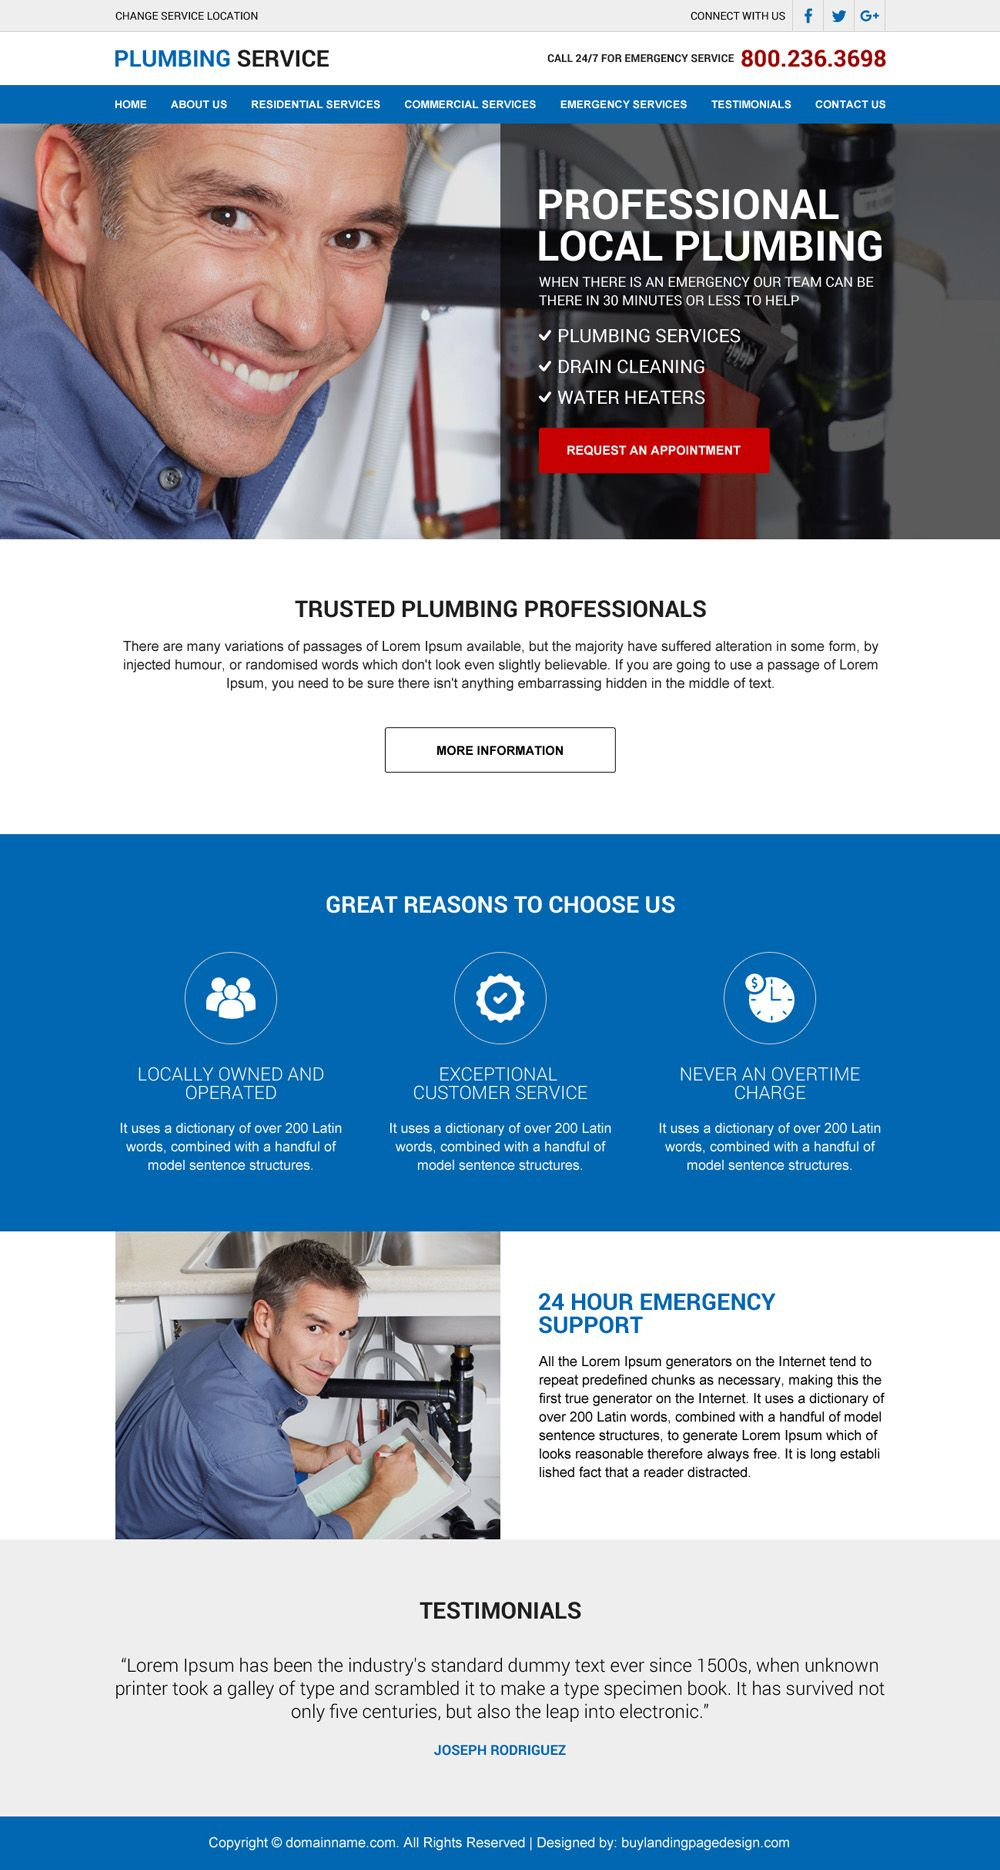 Professional Local Plumbing Responsive Website Design Web Design Website Design Responsive Website Design